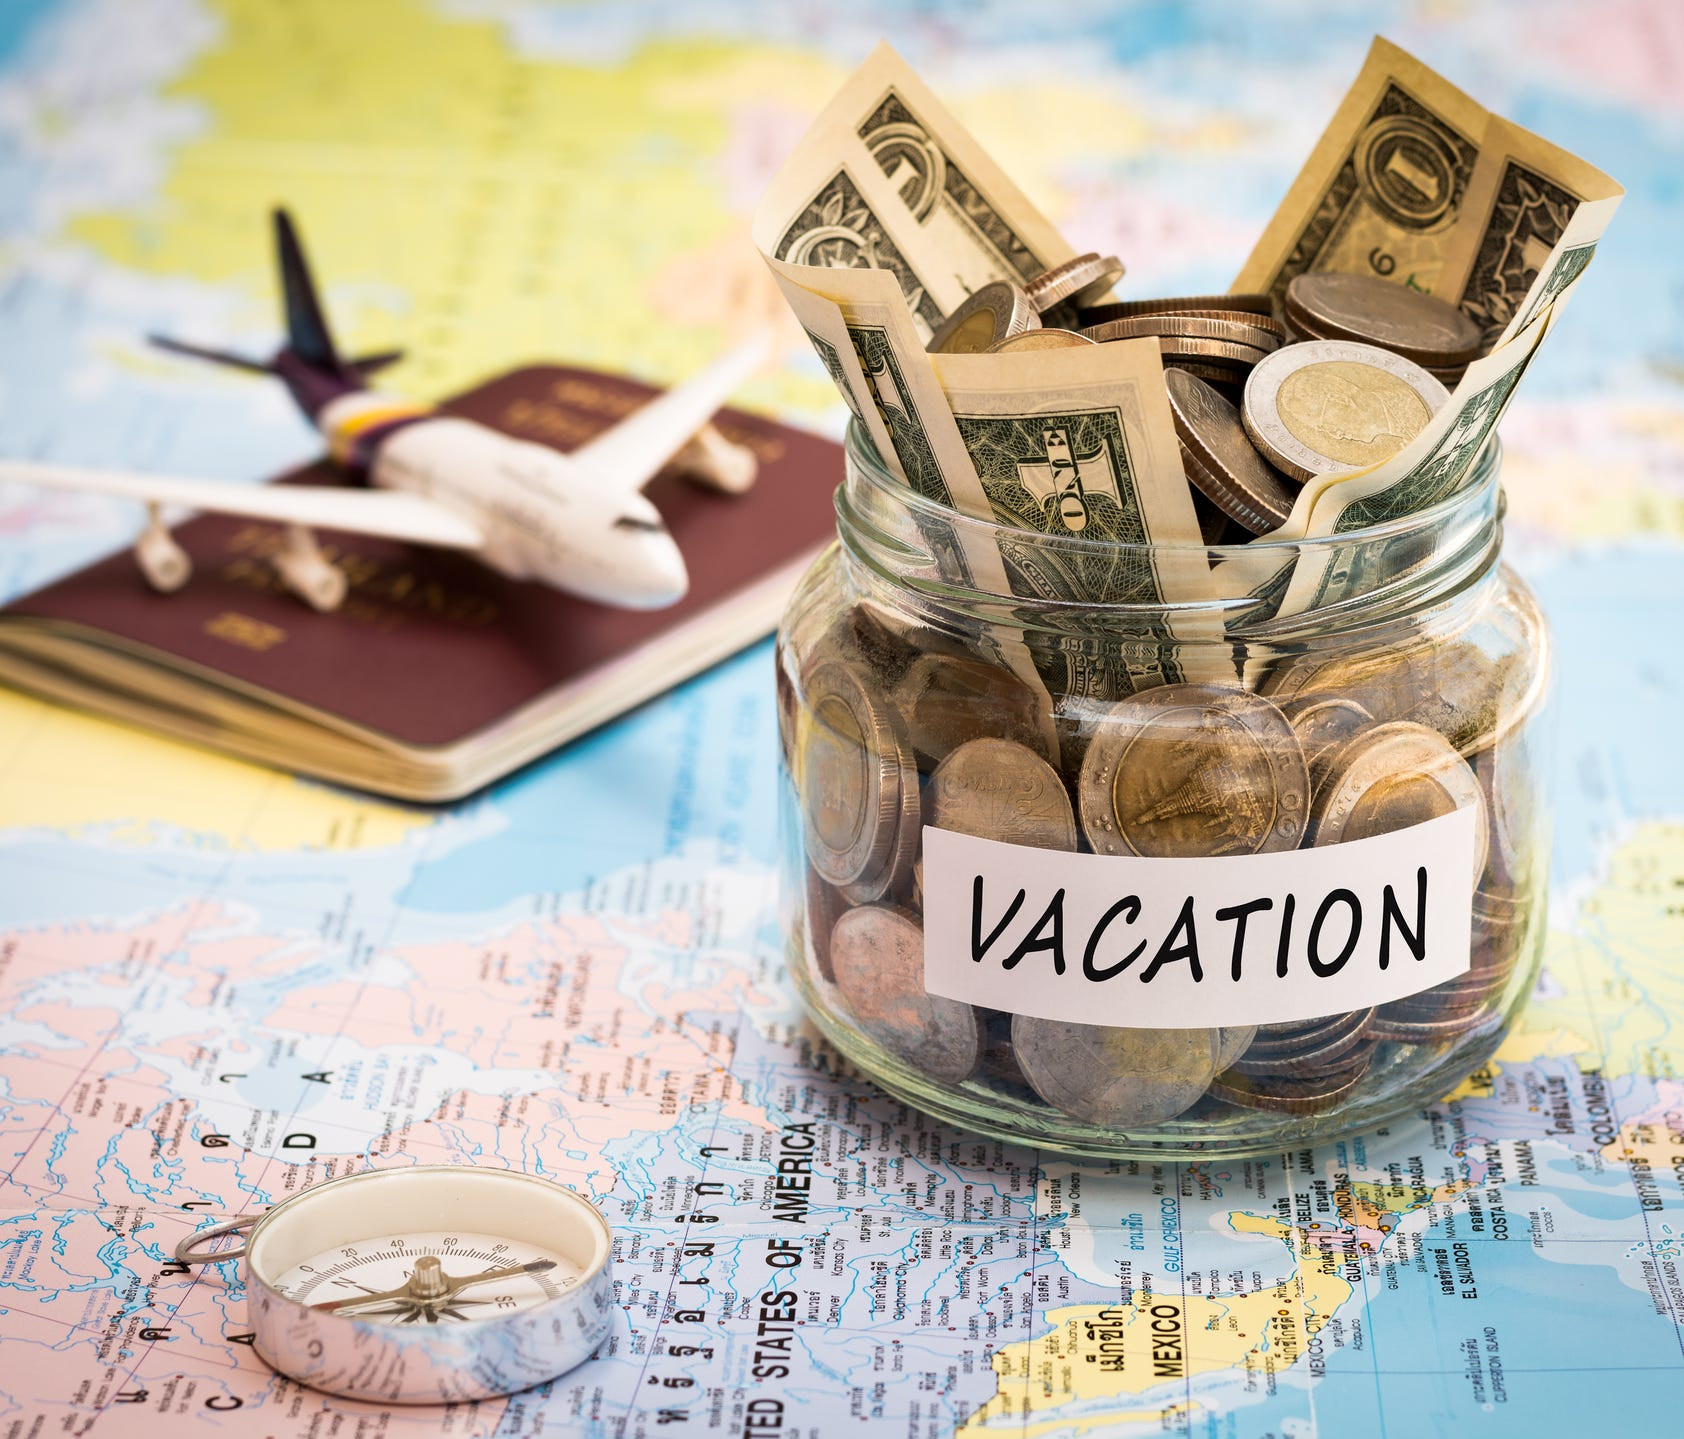 Going over budget on a trip can dampen your enjoyment of the experience in the first place — or leave you feeling financially strapped after the fact. Before you fast forward to all that regret, keep these things in mind before you travel.